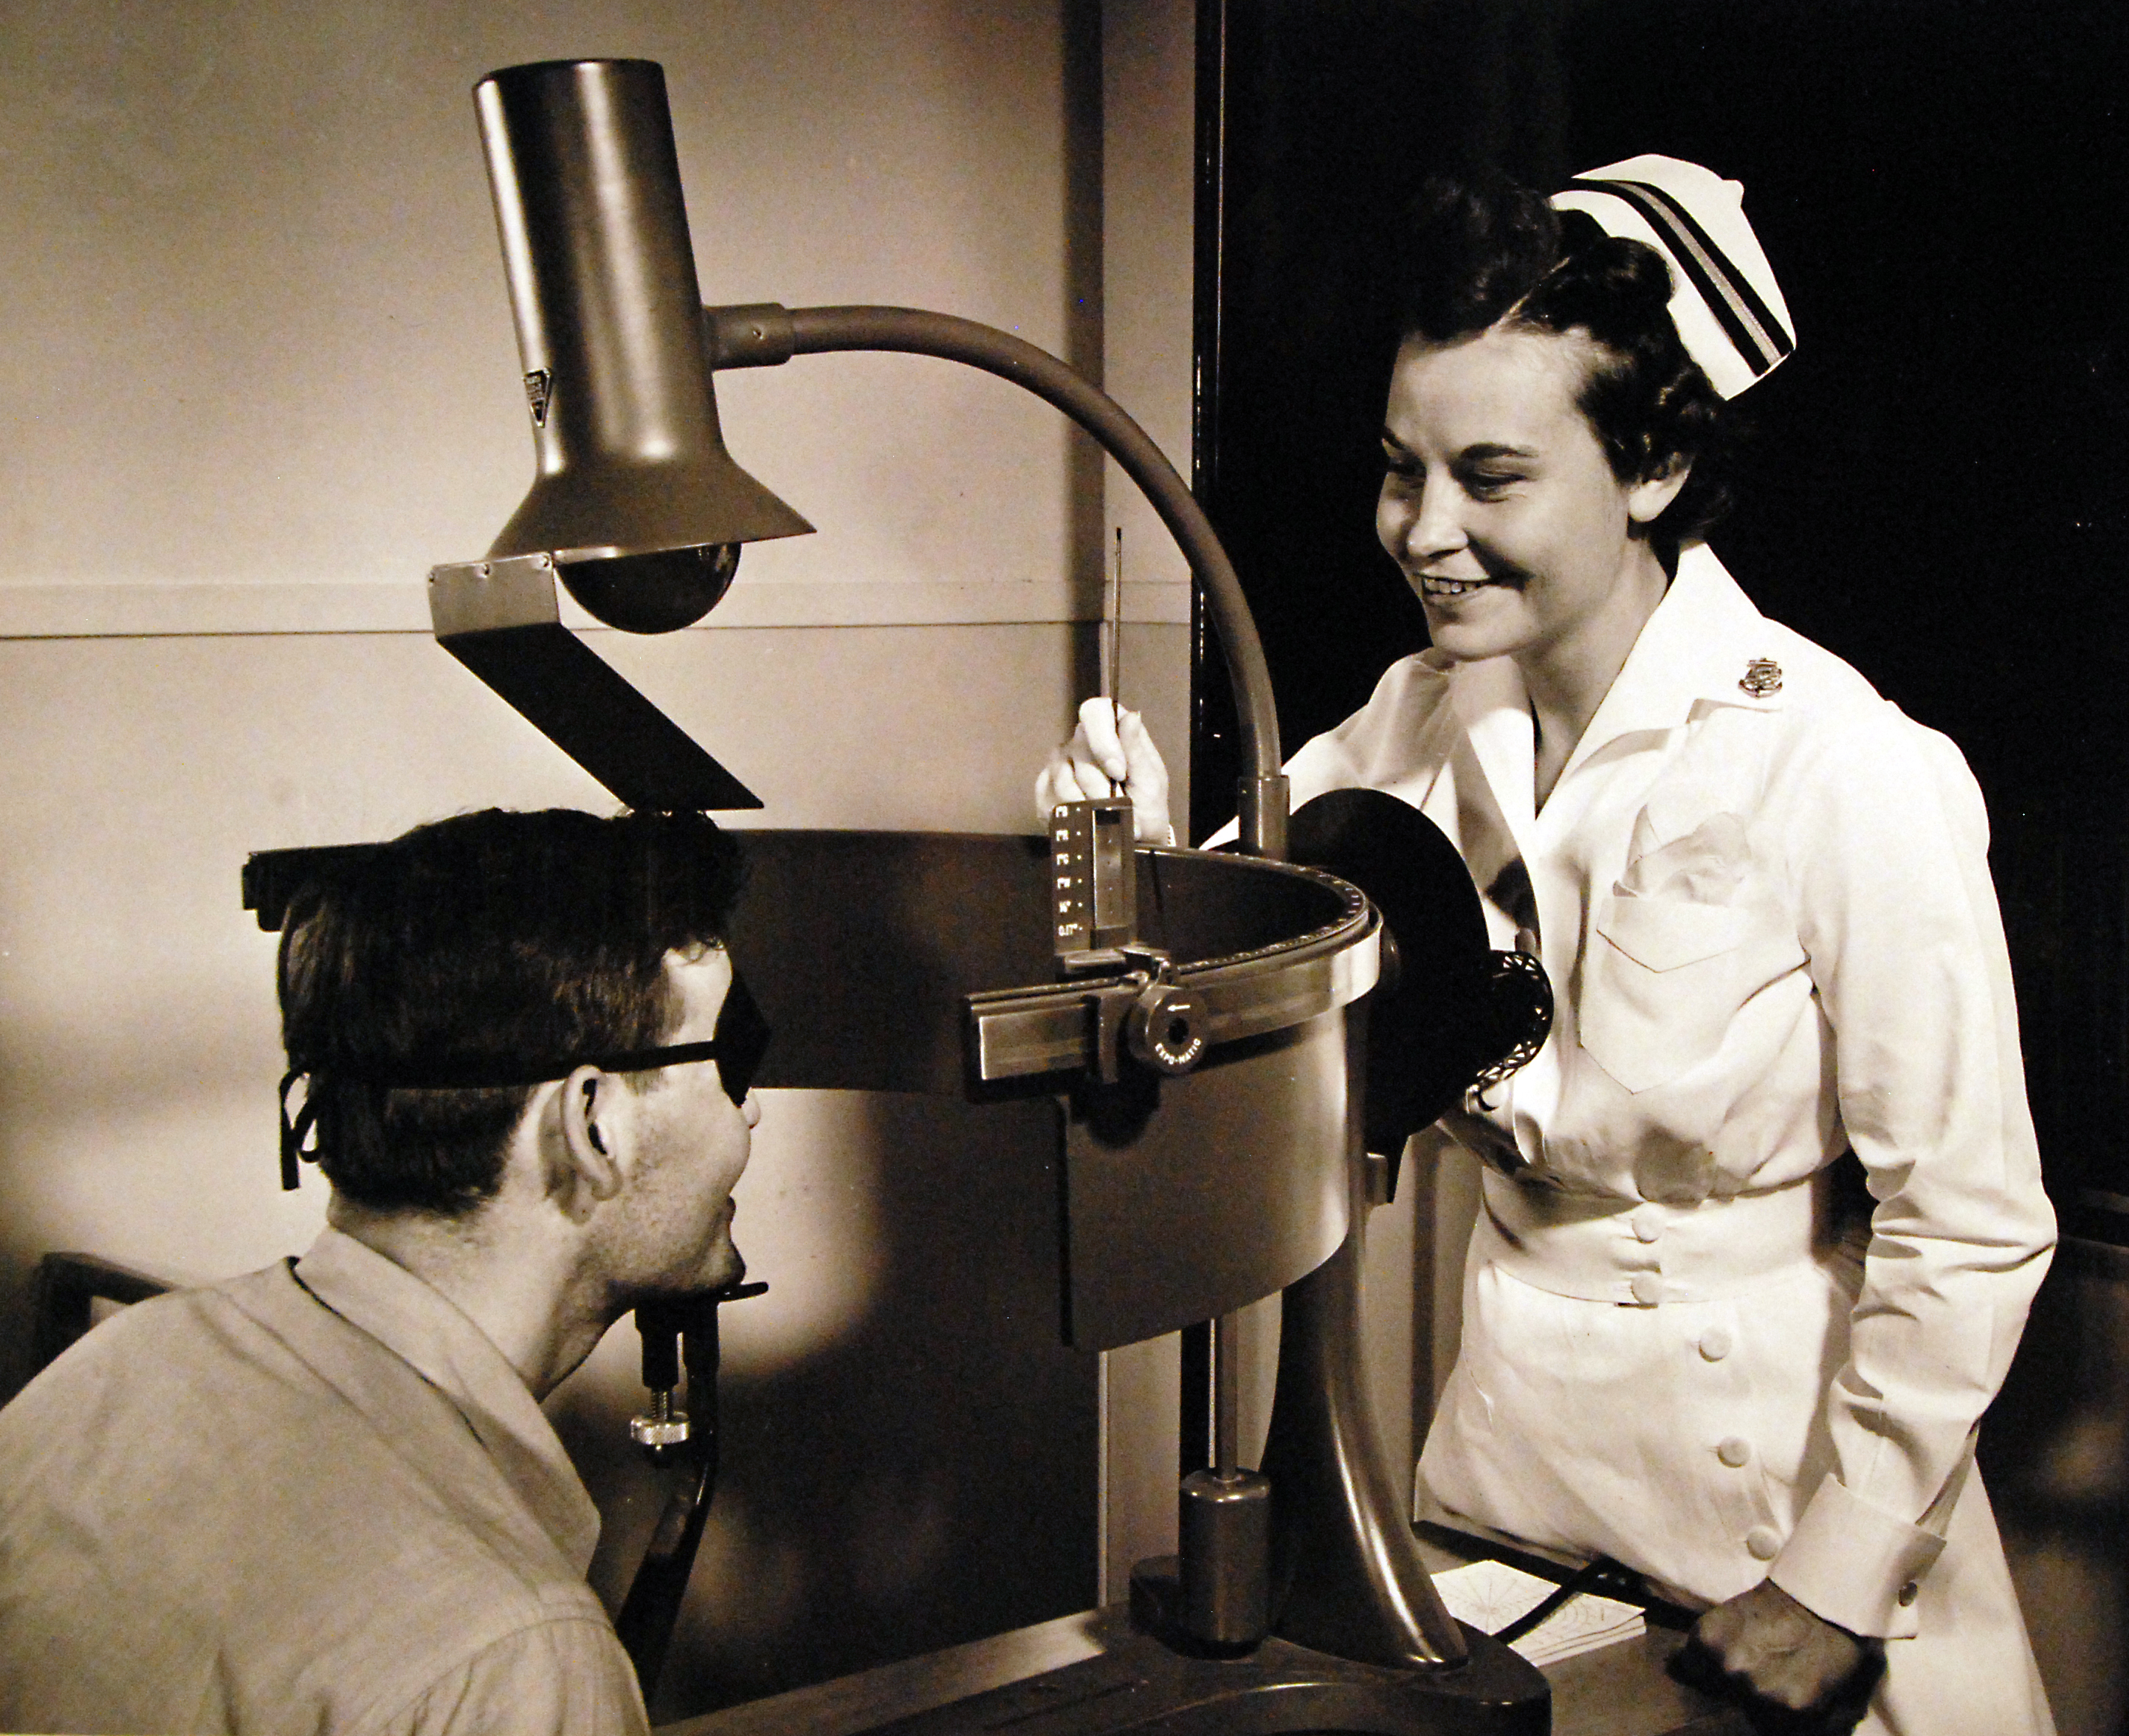 Navy Nurse Examines Patient's Field of Vision